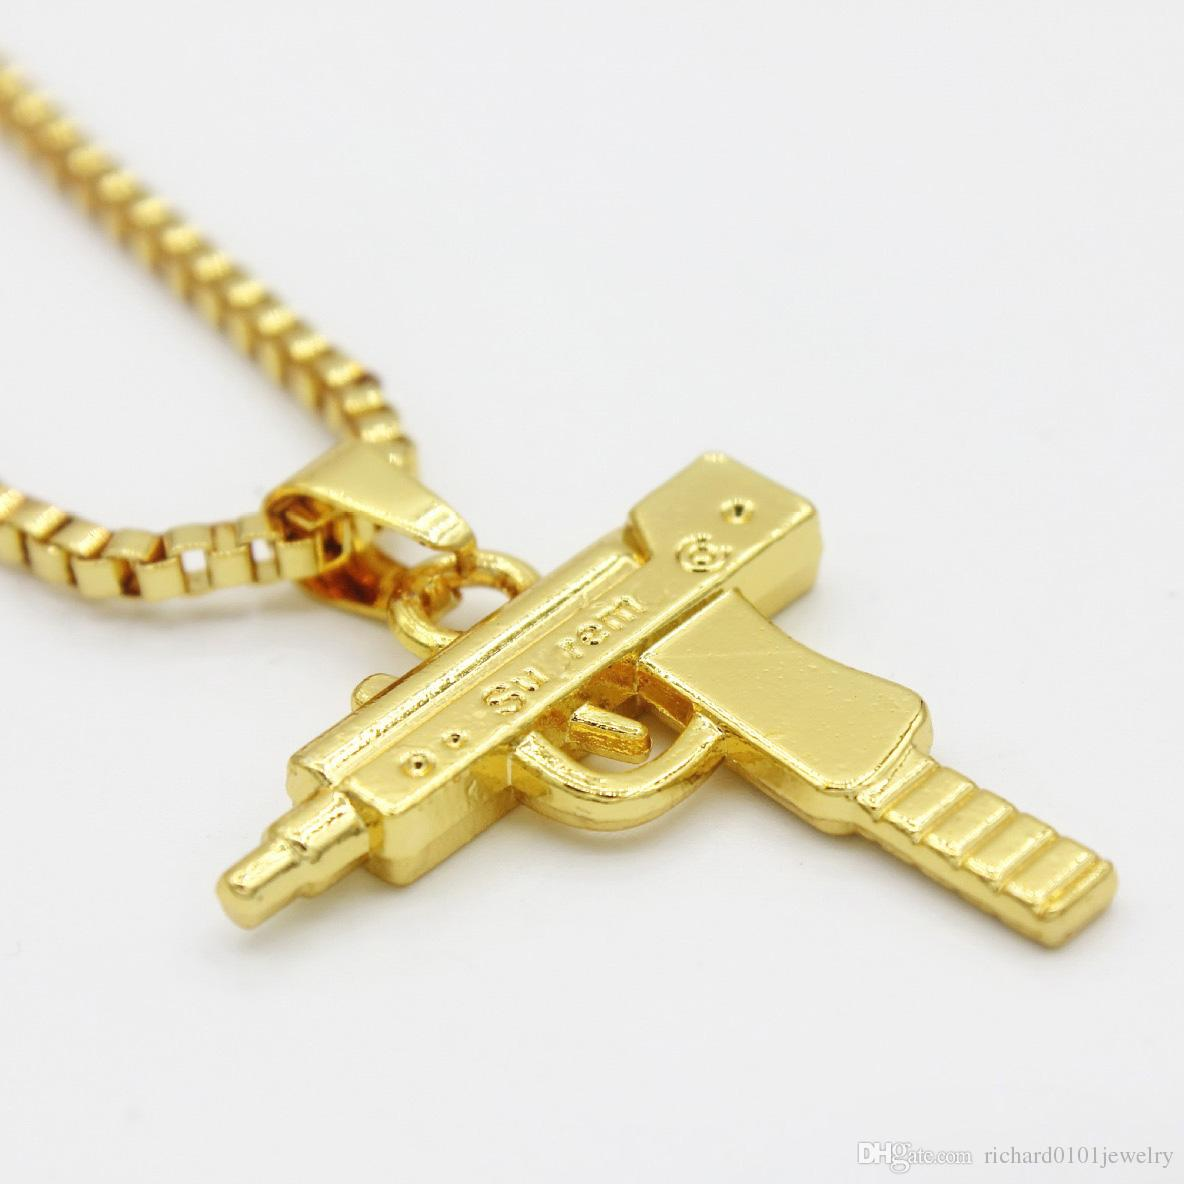 Wholesale hot sale hip hop necklaces engraved gun shape uzi golden wholesale hot sale hip hop necklaces engraved gun shape uzi golden pendant high quality necklace gold chain popular fashion pendant jewelry gold jewelry aloadofball Images